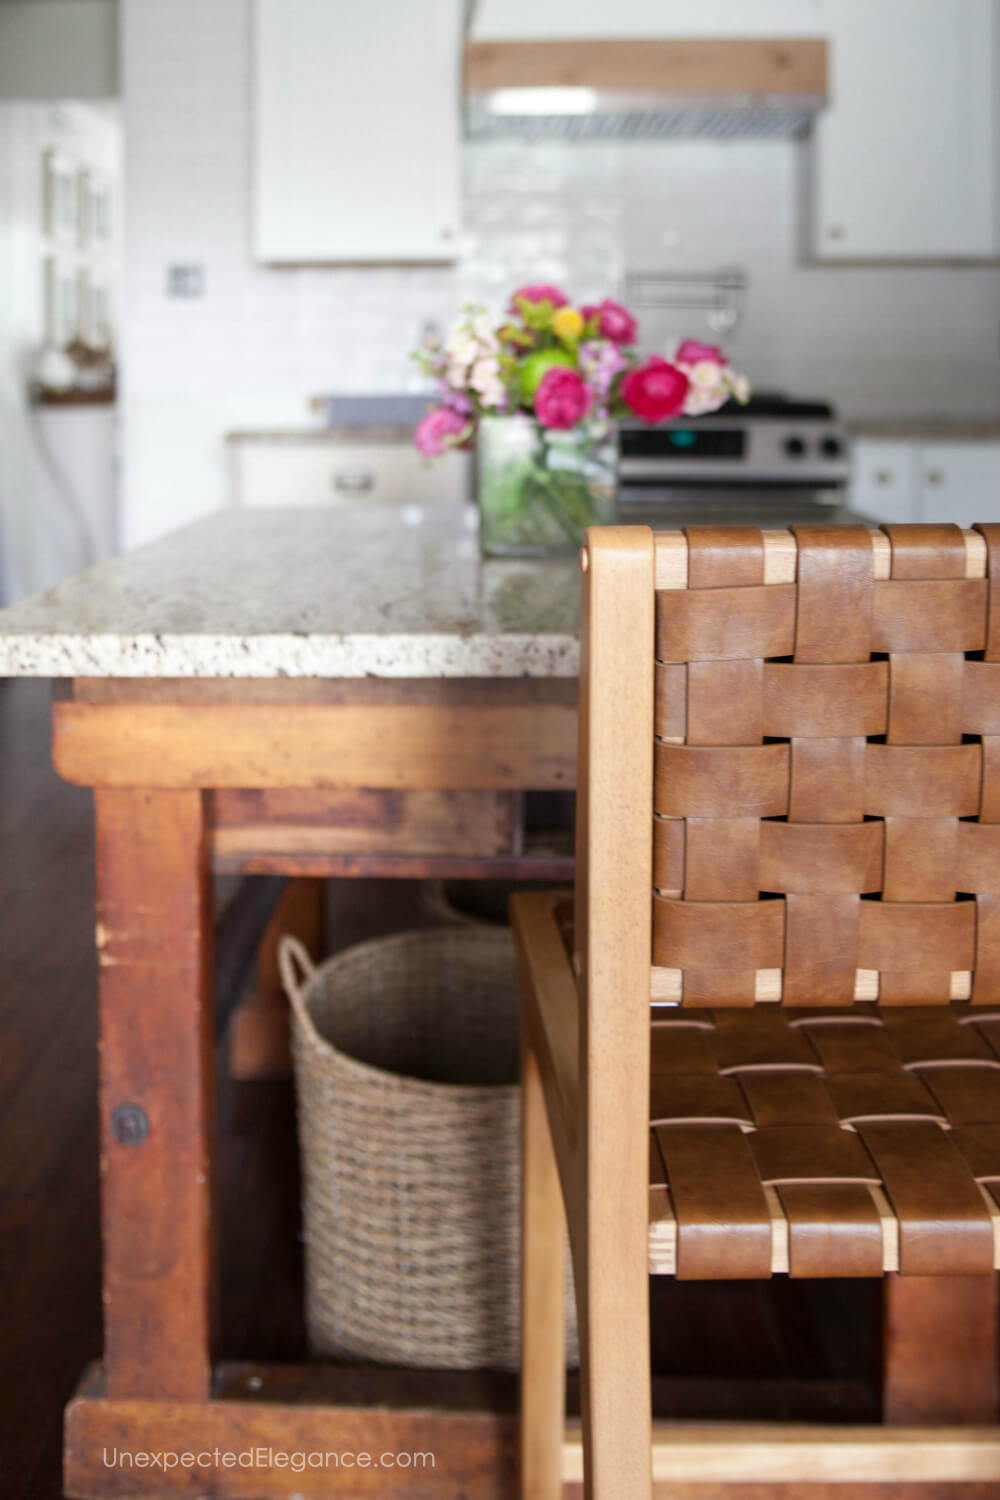 How to alter a barstool to make it fit under a kitchen counter.